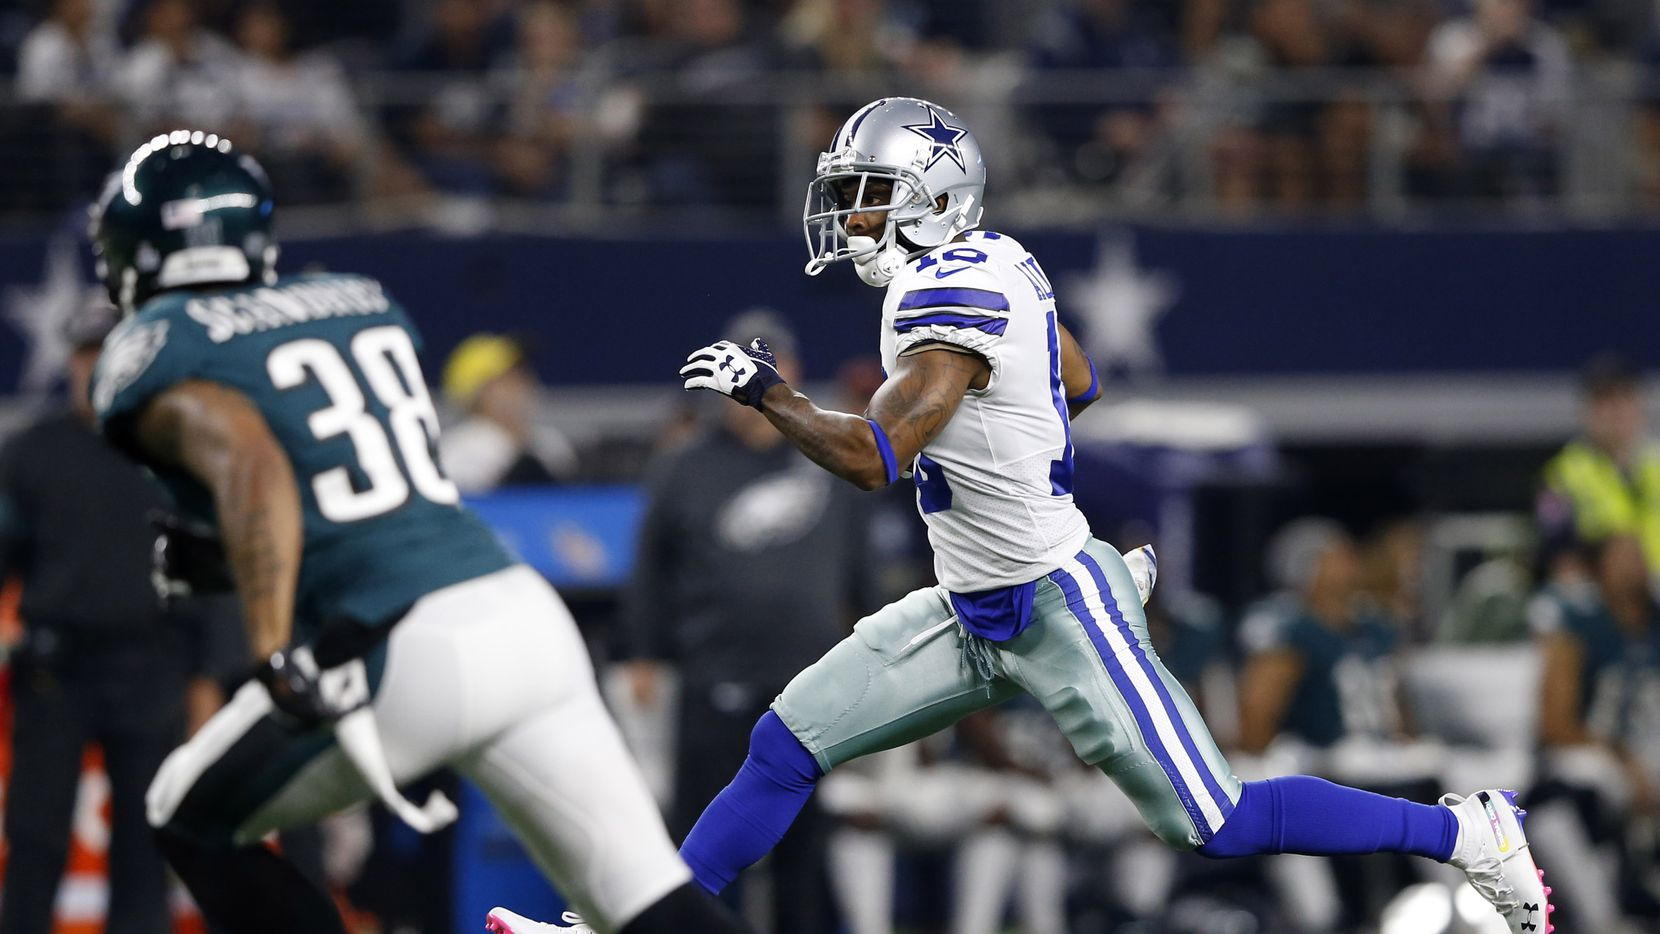 Dallas Cowboys wide receiver Tavon Austin (10) runs up the field after the catch as Philadelphia Eagles cornerback Orlando Scandrick (38) watches during the first half of play at AT&T Stadium in Arlington, Texas on Sunday, October 20, 2019. (Vernon Bryant/The Dallas Morning News)